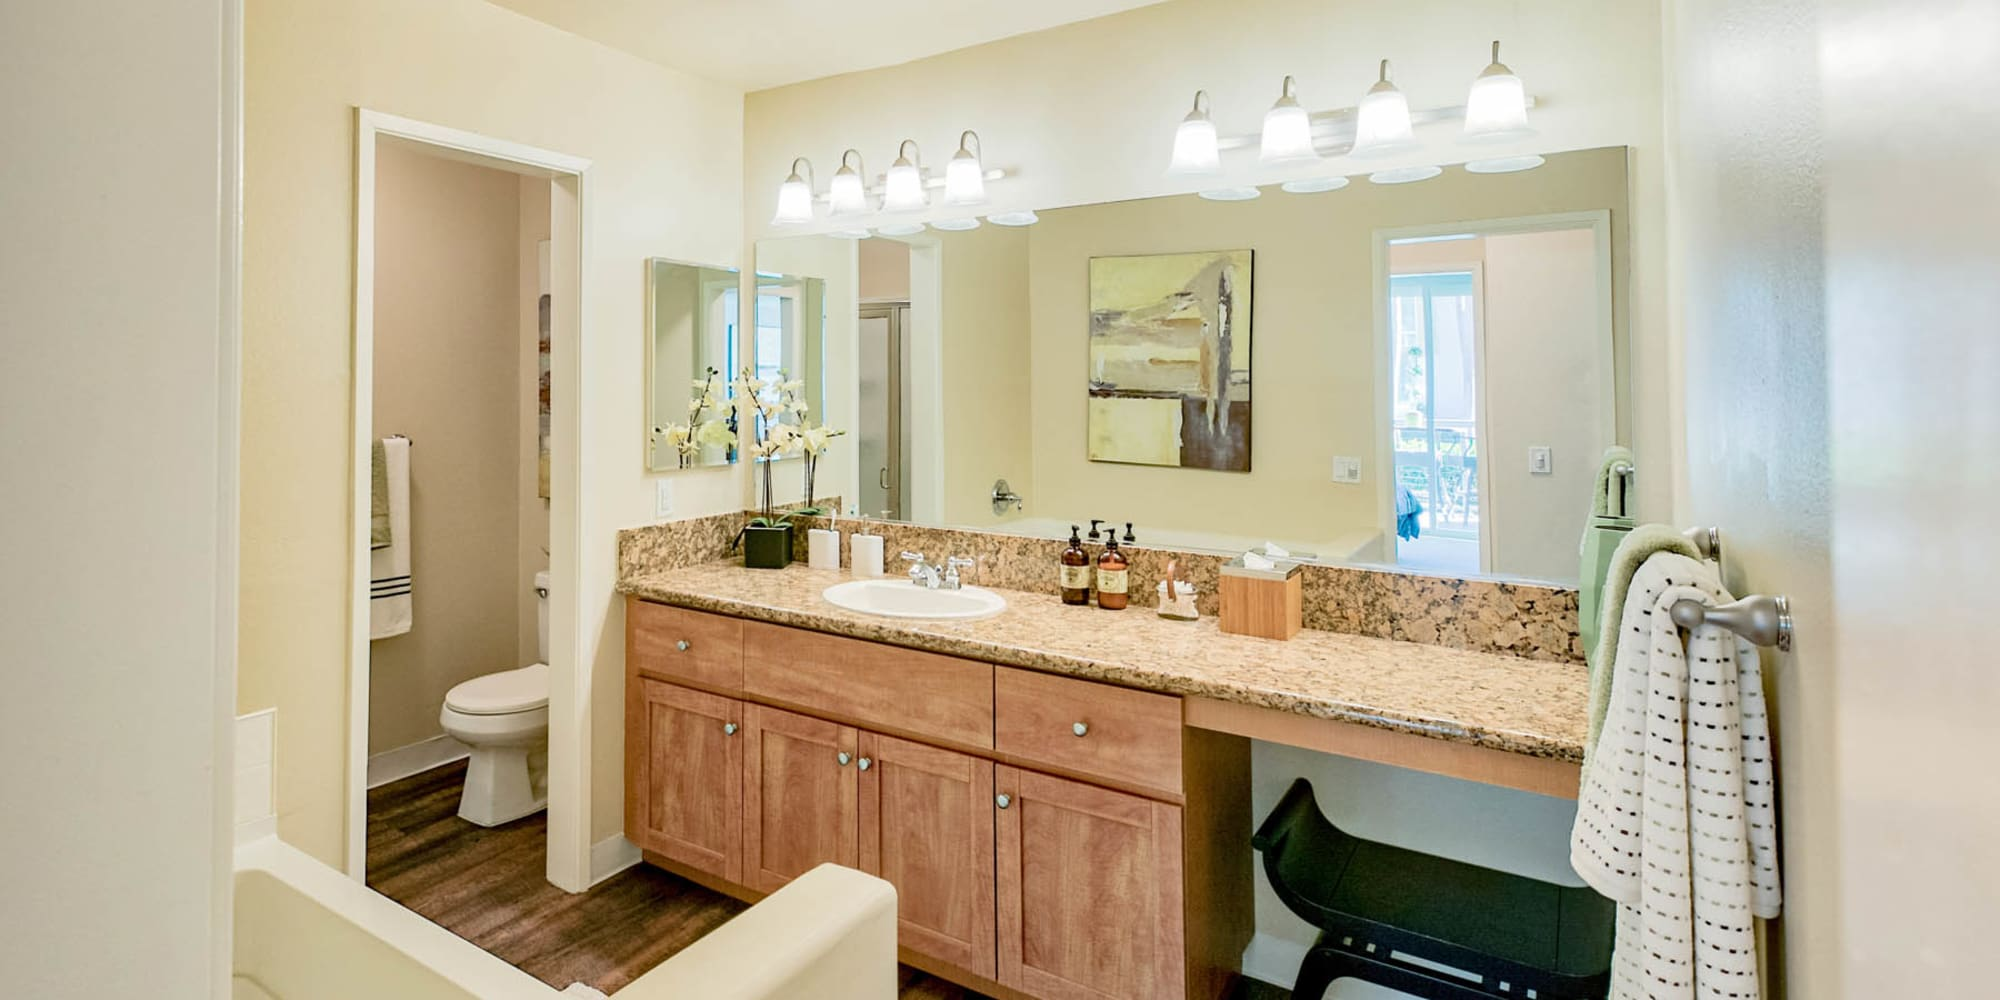 Large vanity mirror and a granite countertop in a model home's bathroom at Waters Edge at Marina Harbor in Marina Del Rey, California